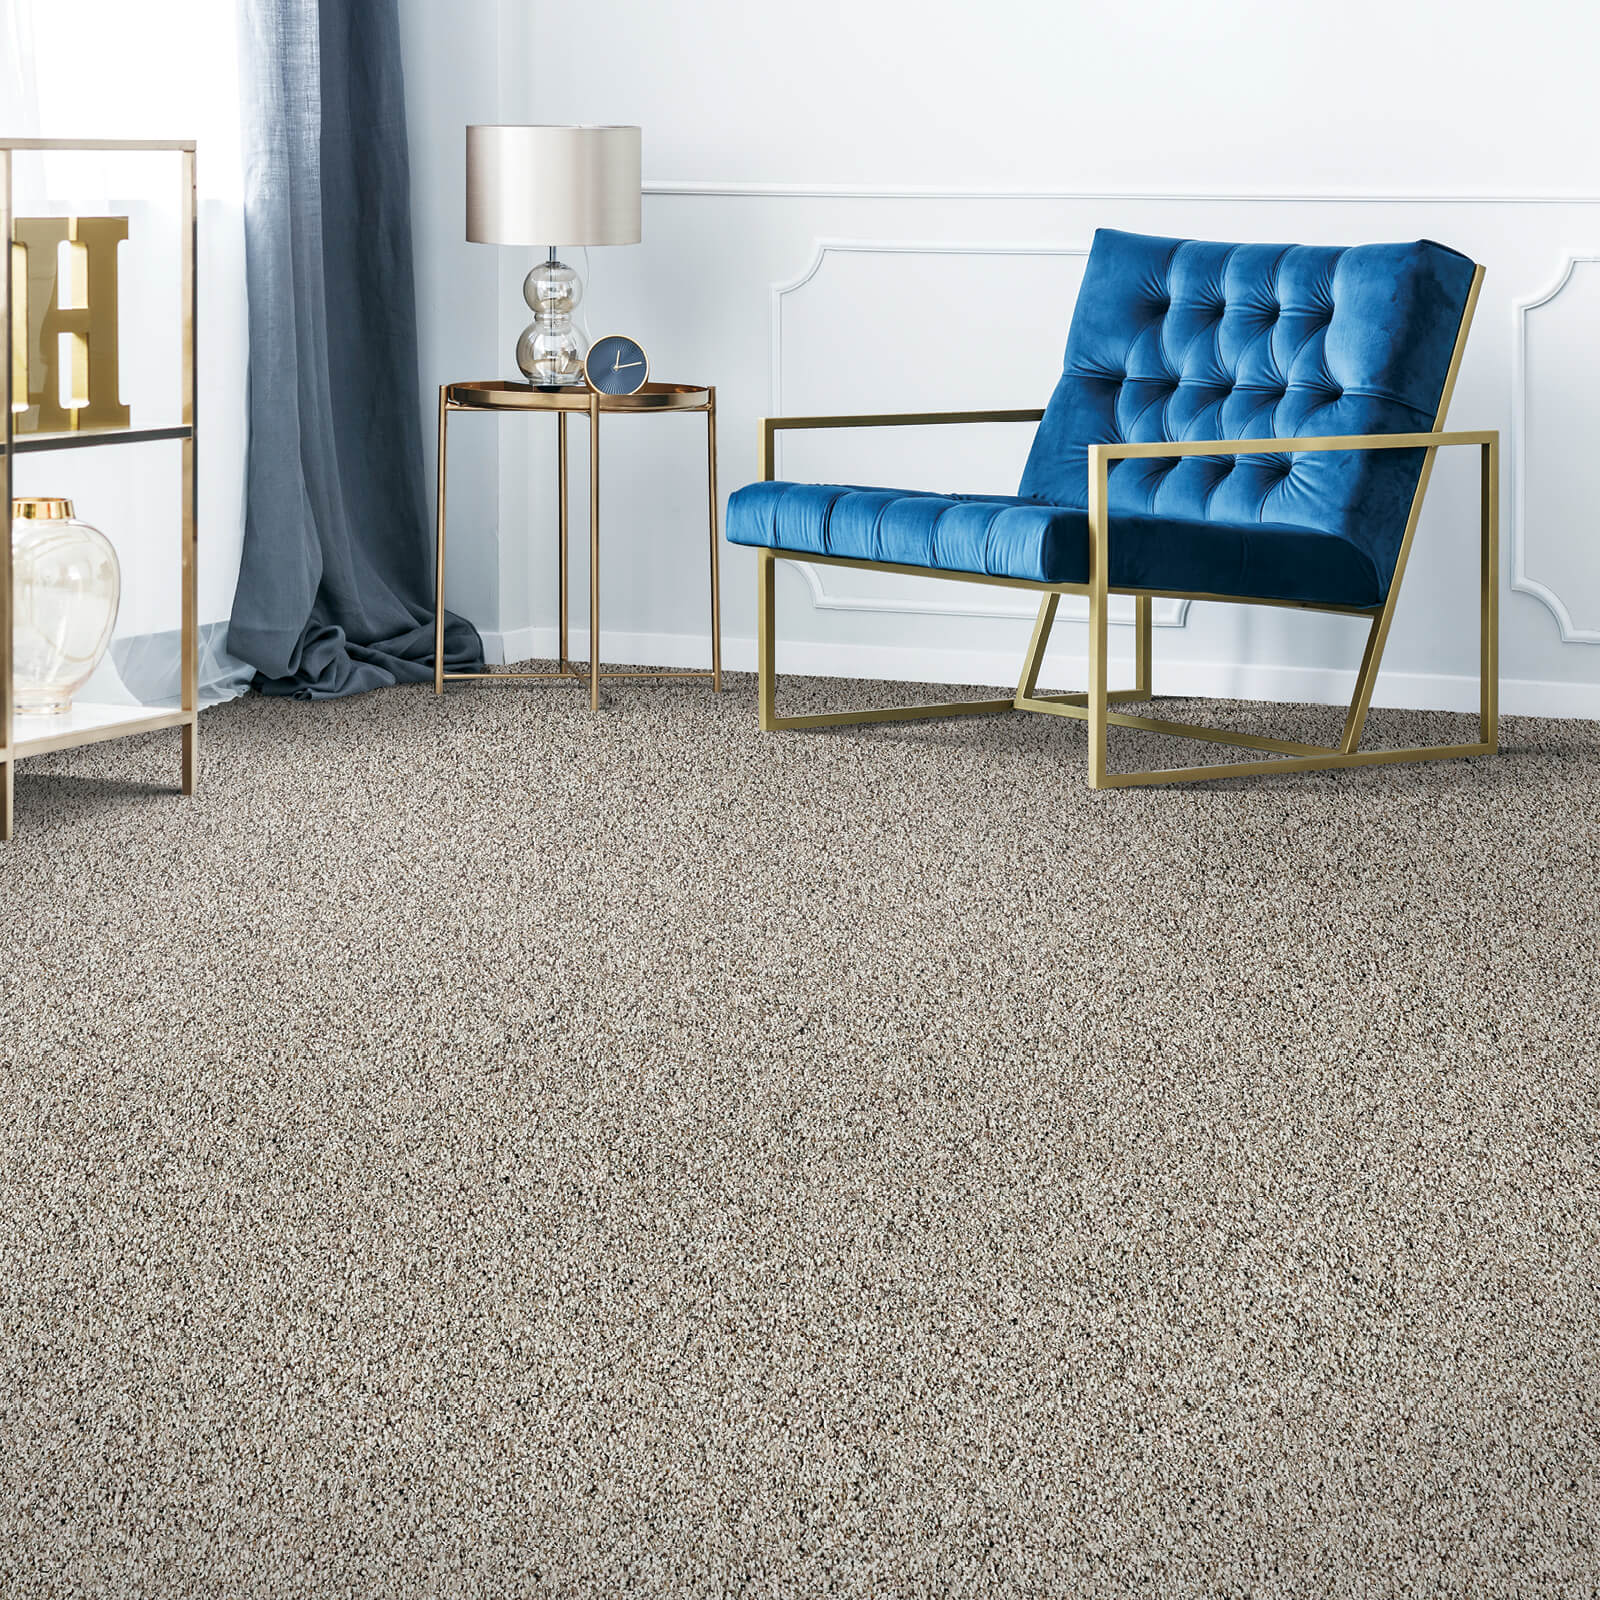 Know How to Choose a Carpet for Allergies | IQ Floors